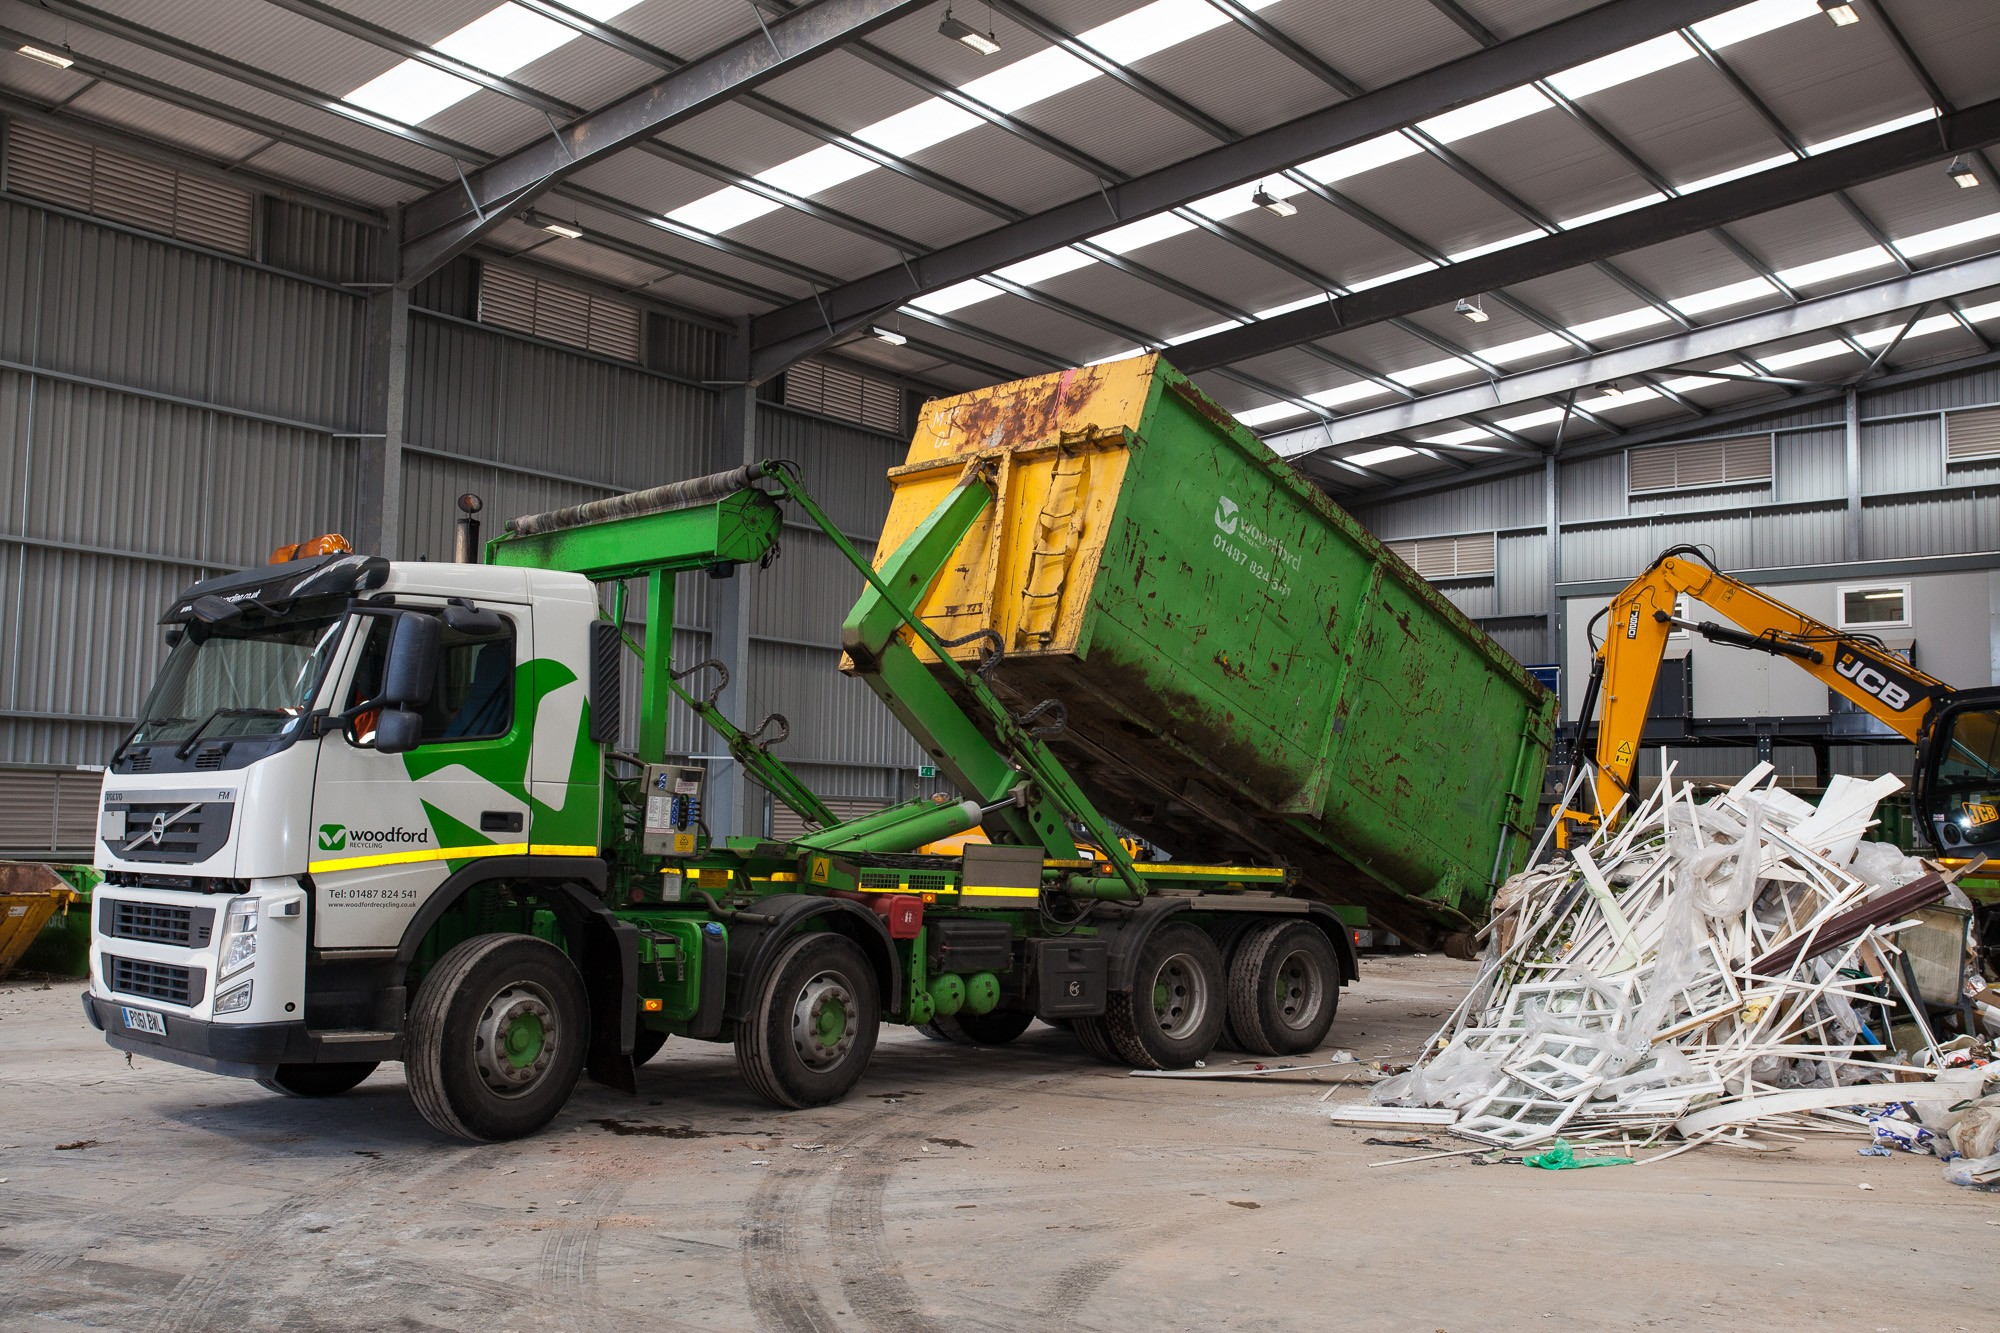 woodford-recycling-roll-on-roll-off-skip-RORO-container-vehicle